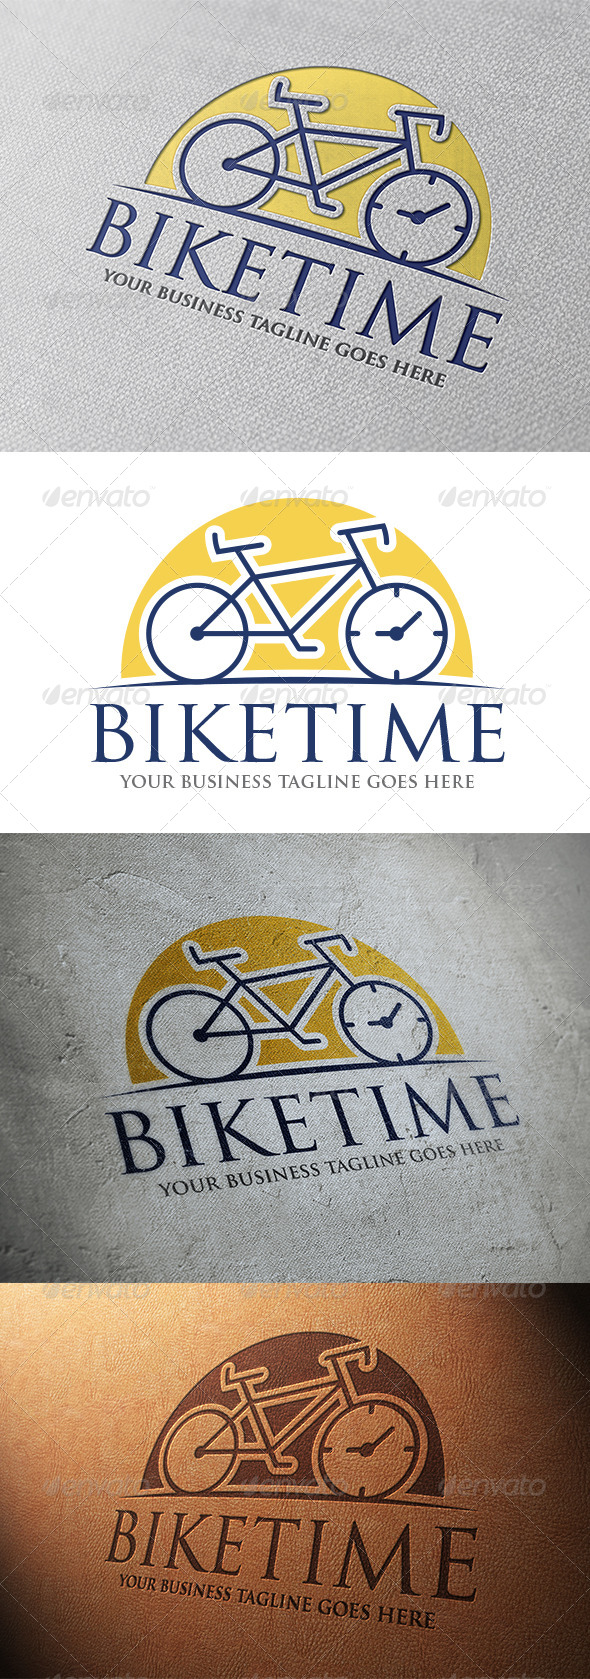 GraphicRiver Bike Time Logo Template 5743671